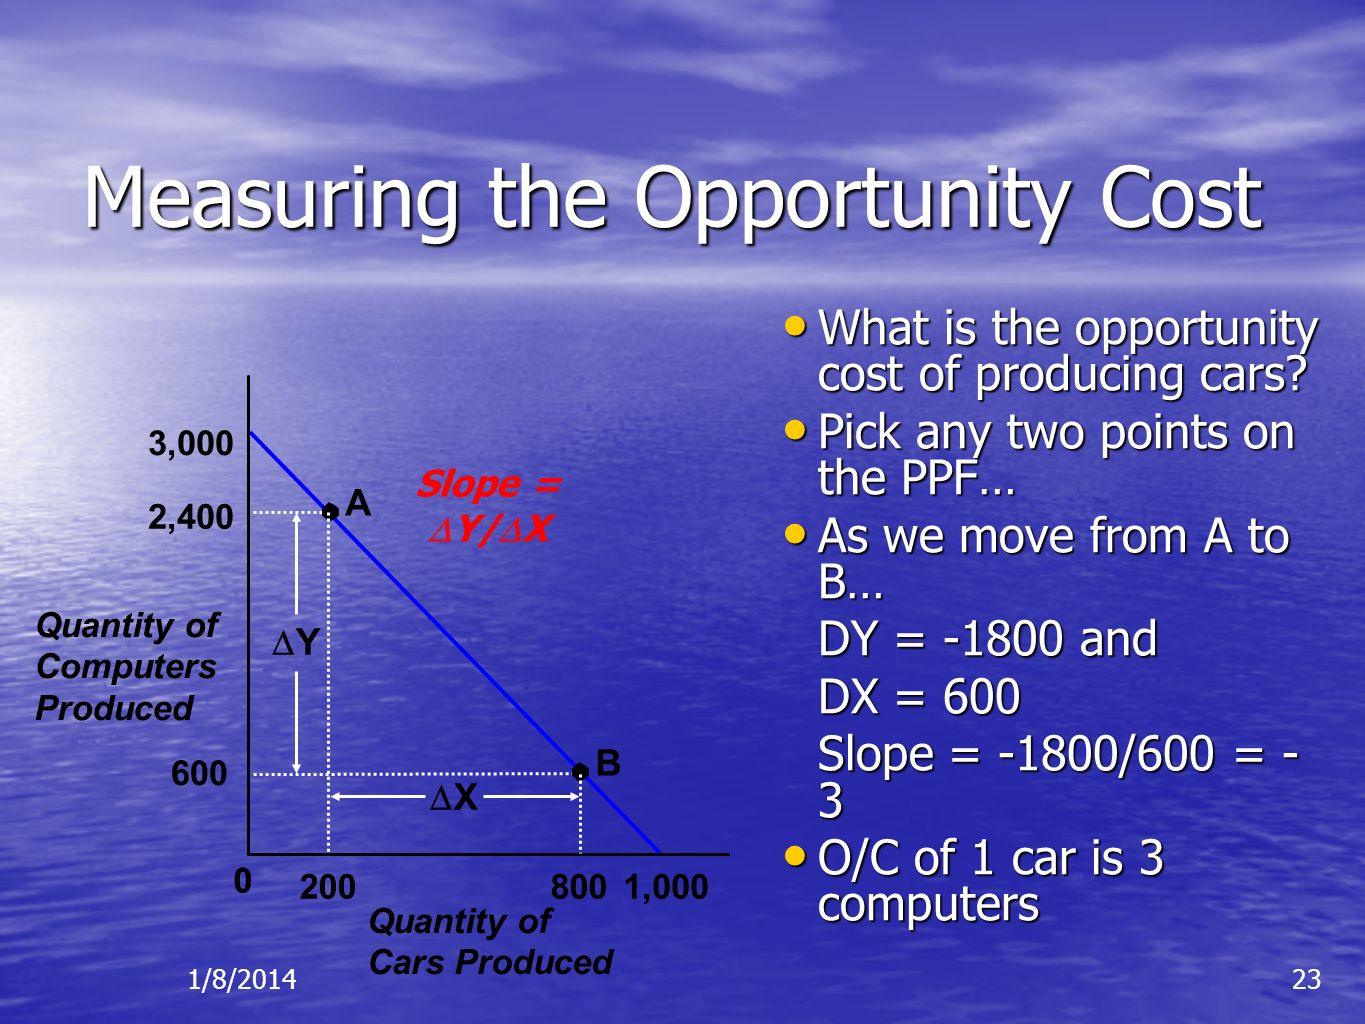 Measuring the Opportunity Cost